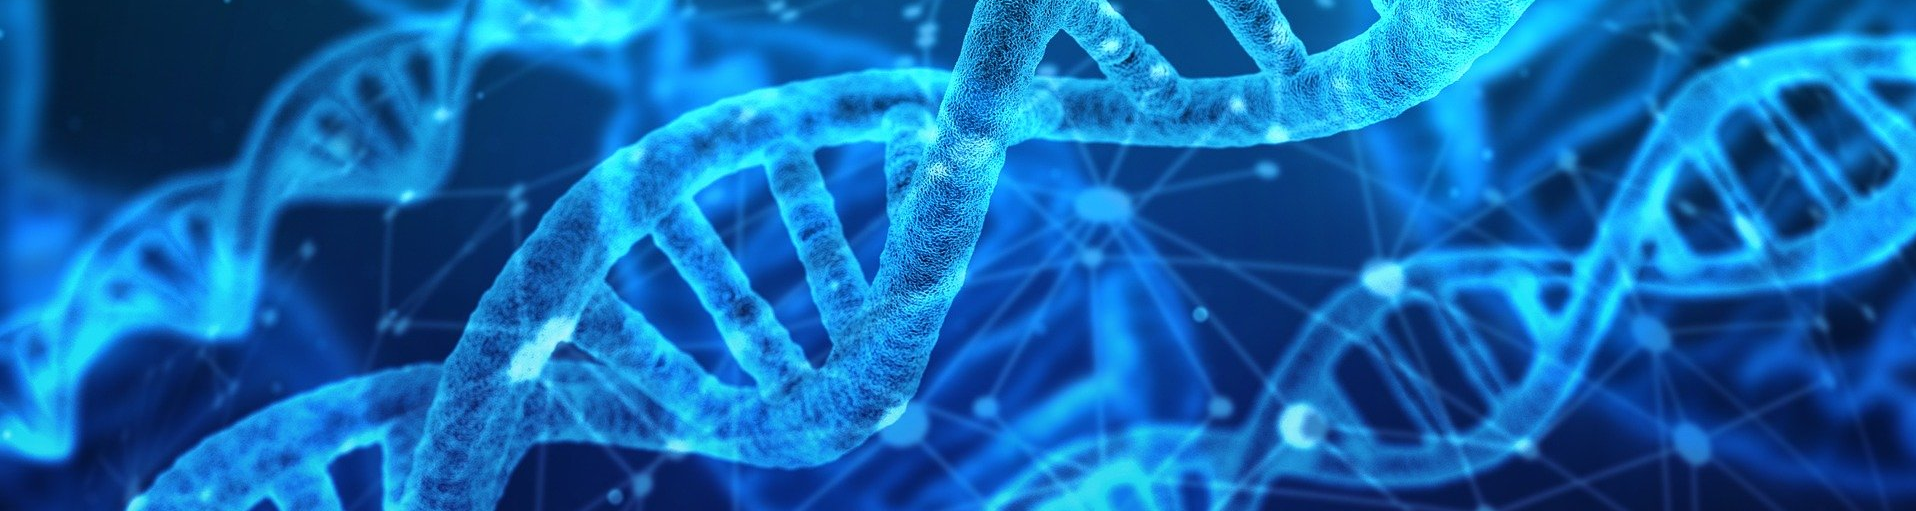 Organisational data DNA